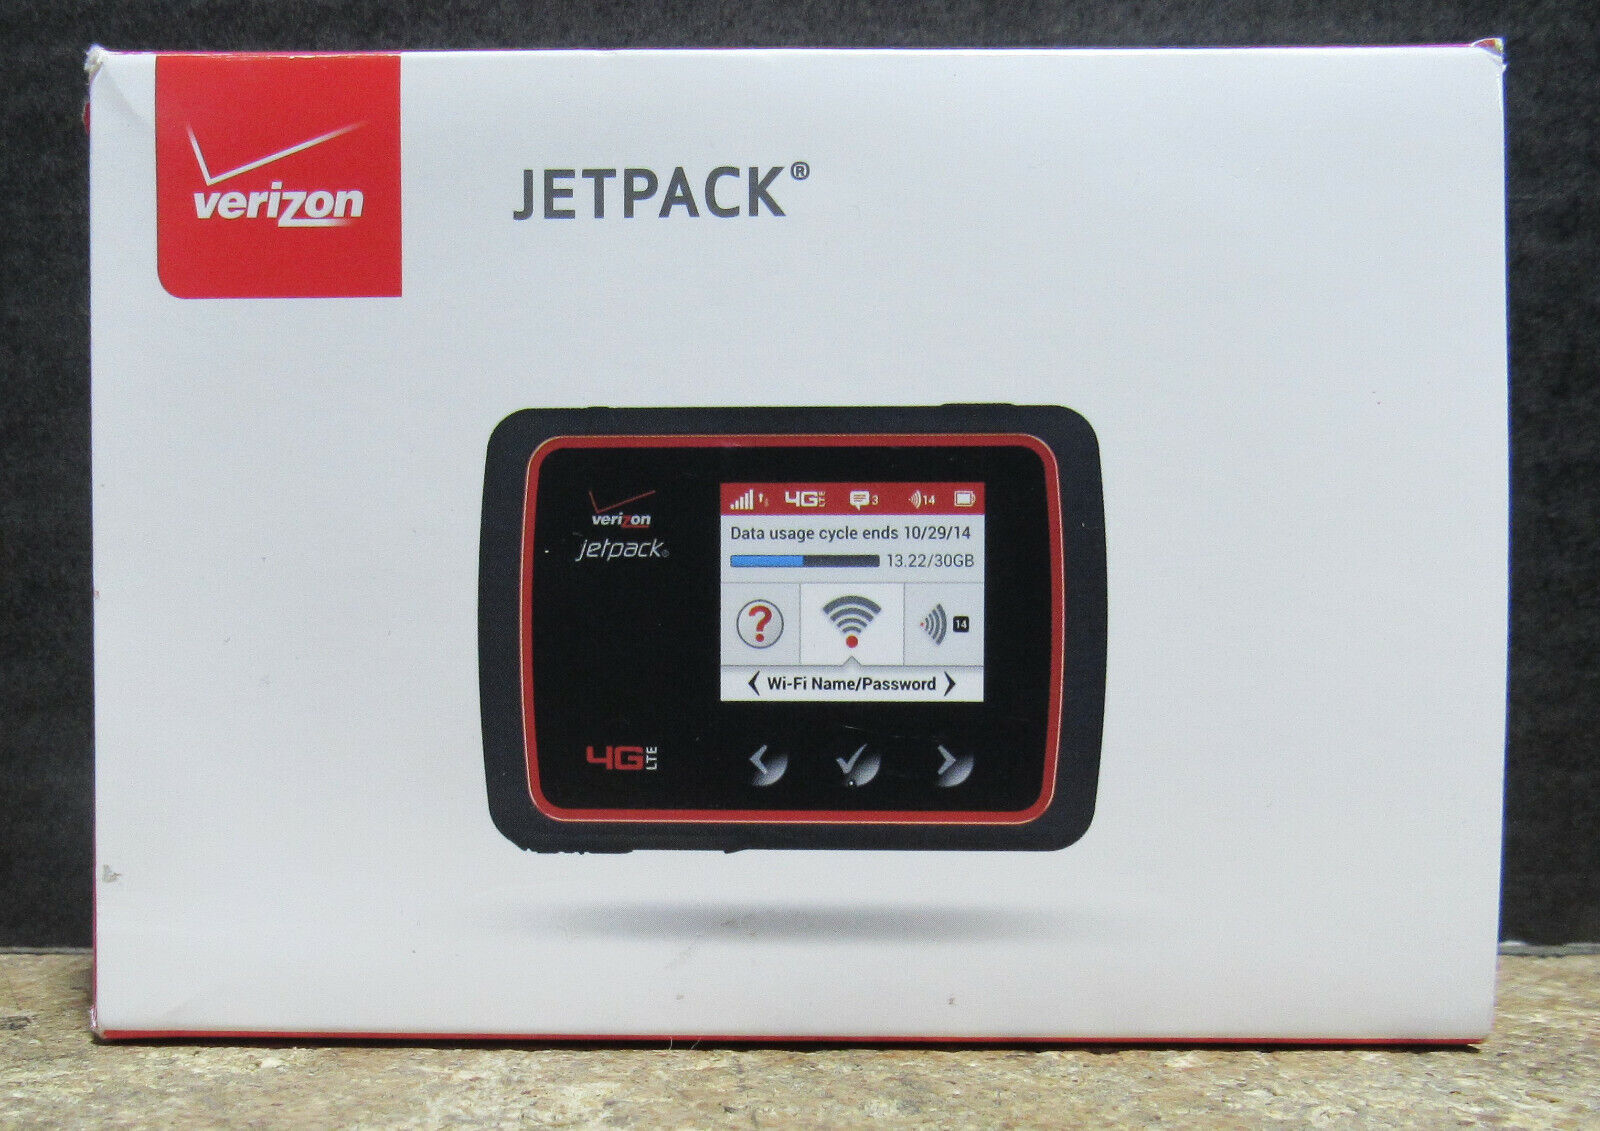 Verizon Unlimited 4G LTE Data And MiFi 6620L Jetpack Mobile